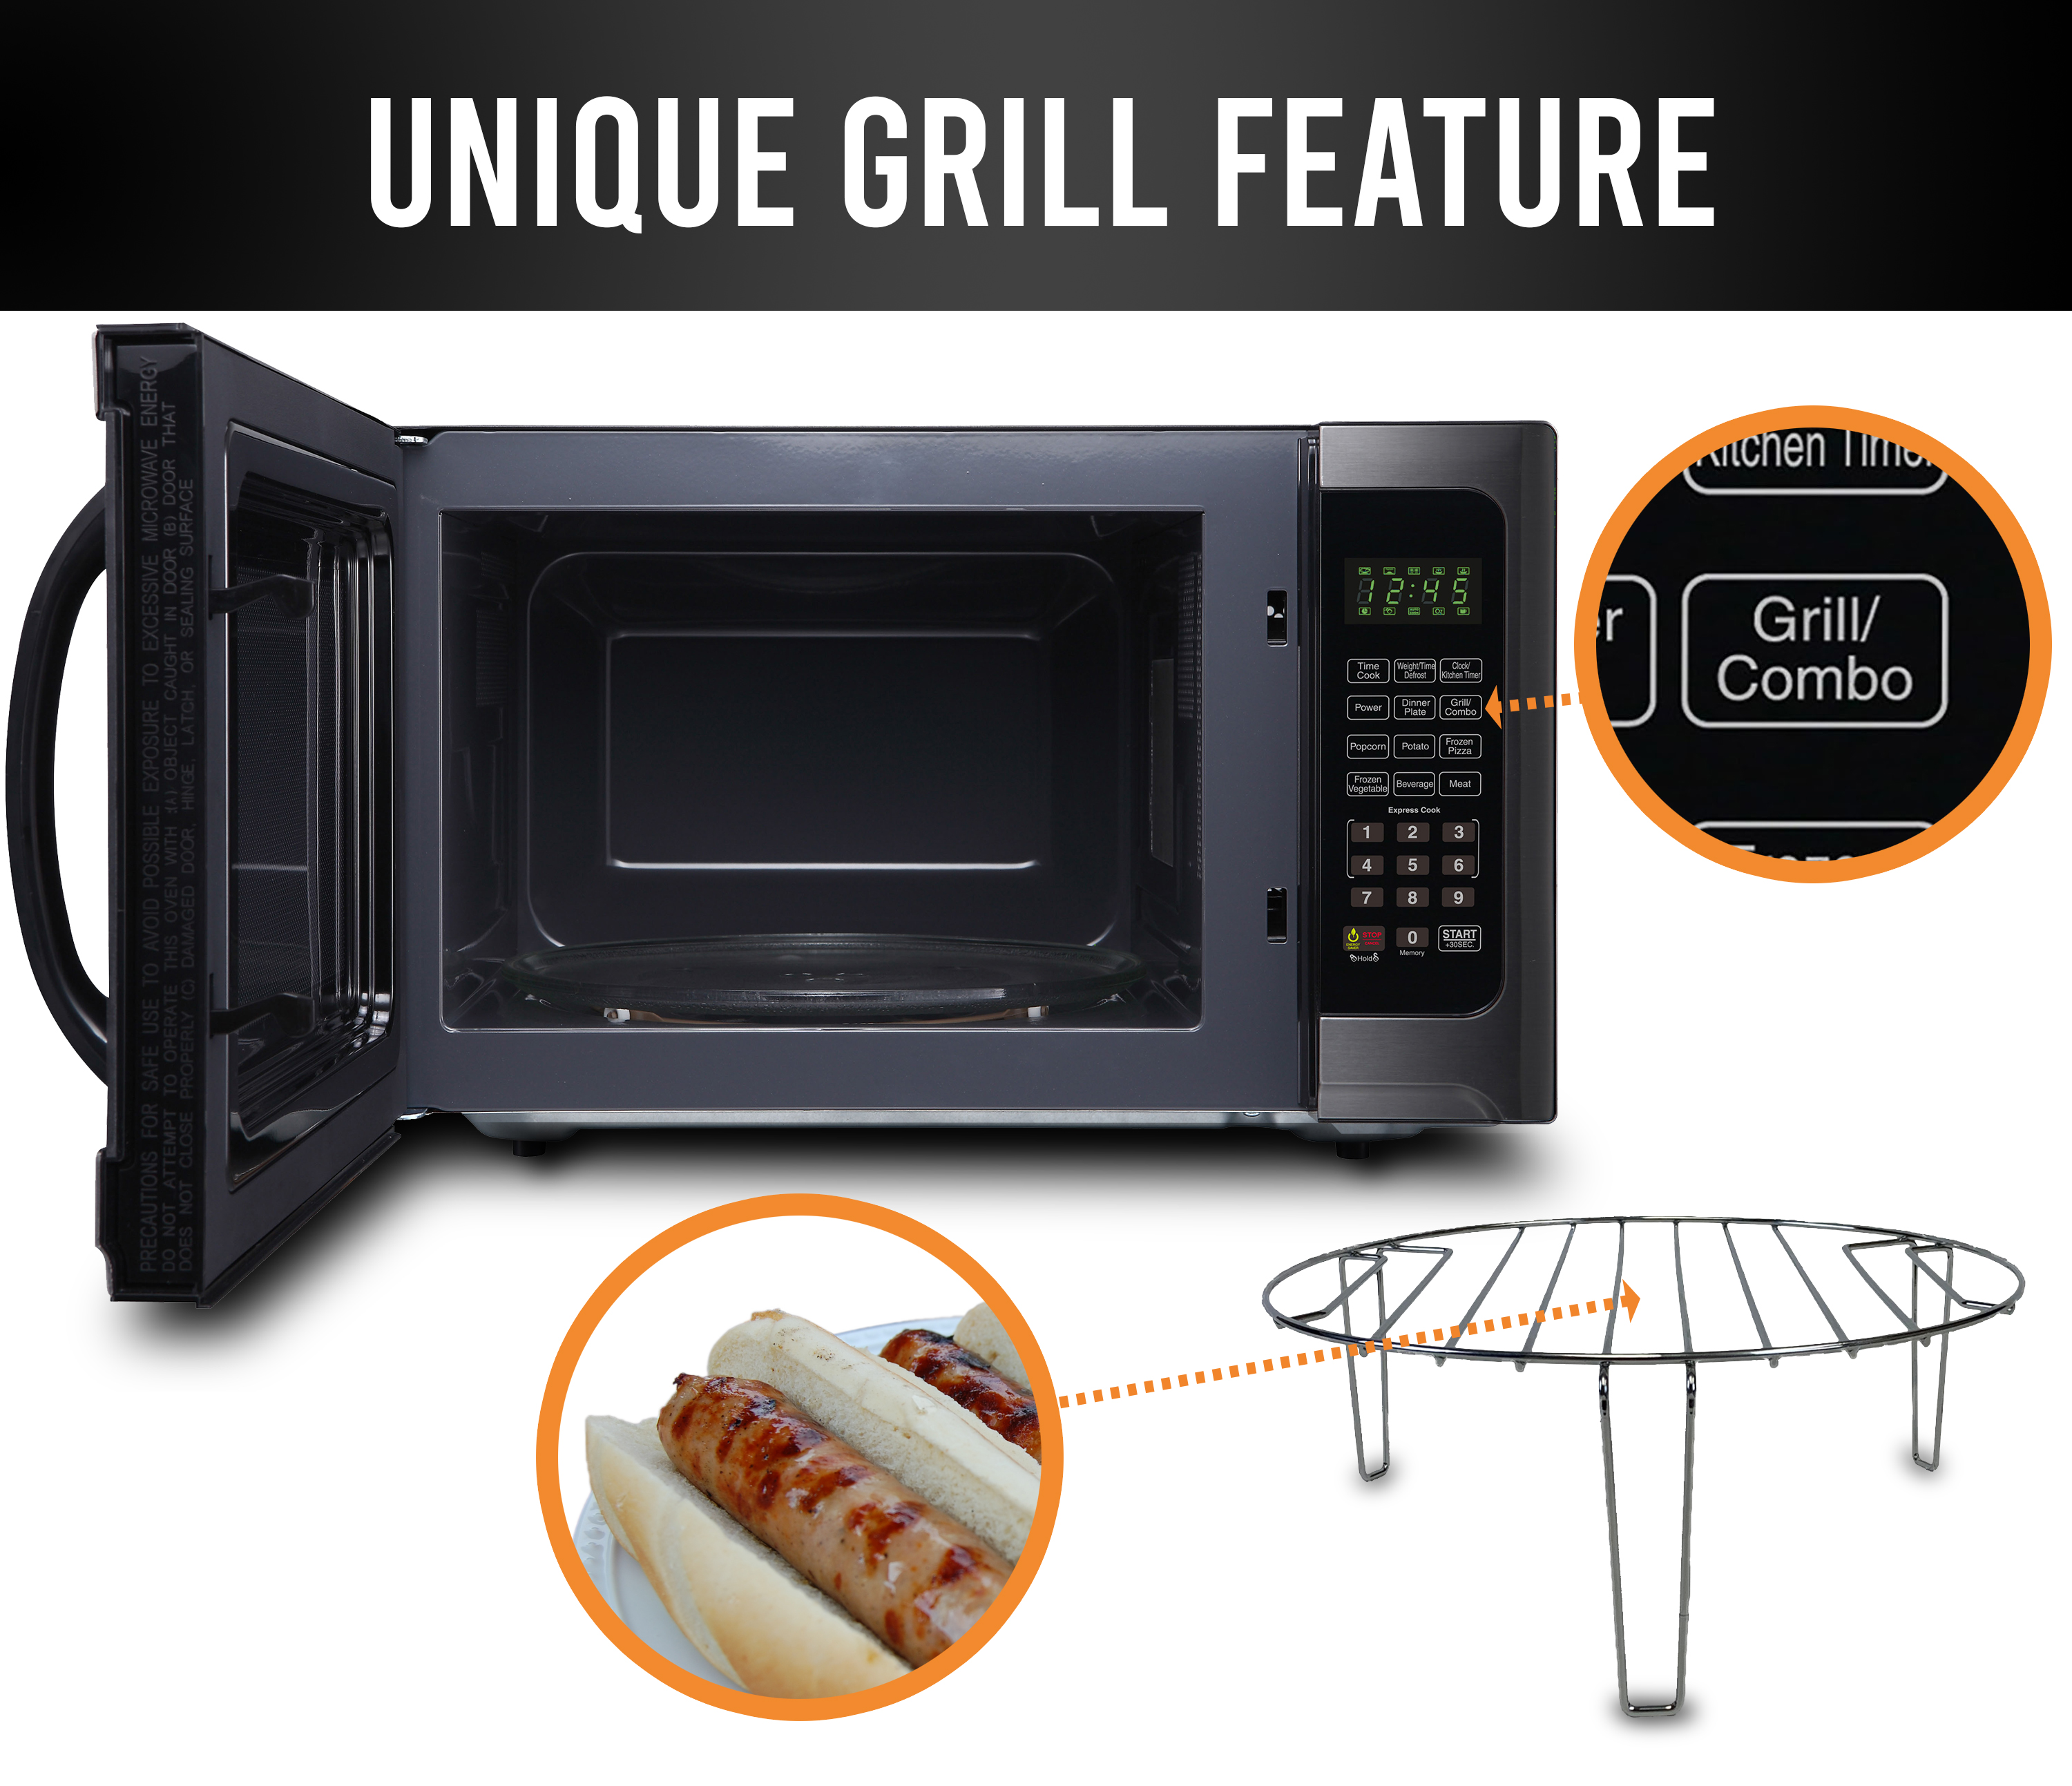 farberware black 1 2 cu ft 1100 watt microwave oven with grill black stainless steel fmo12ahtbsg